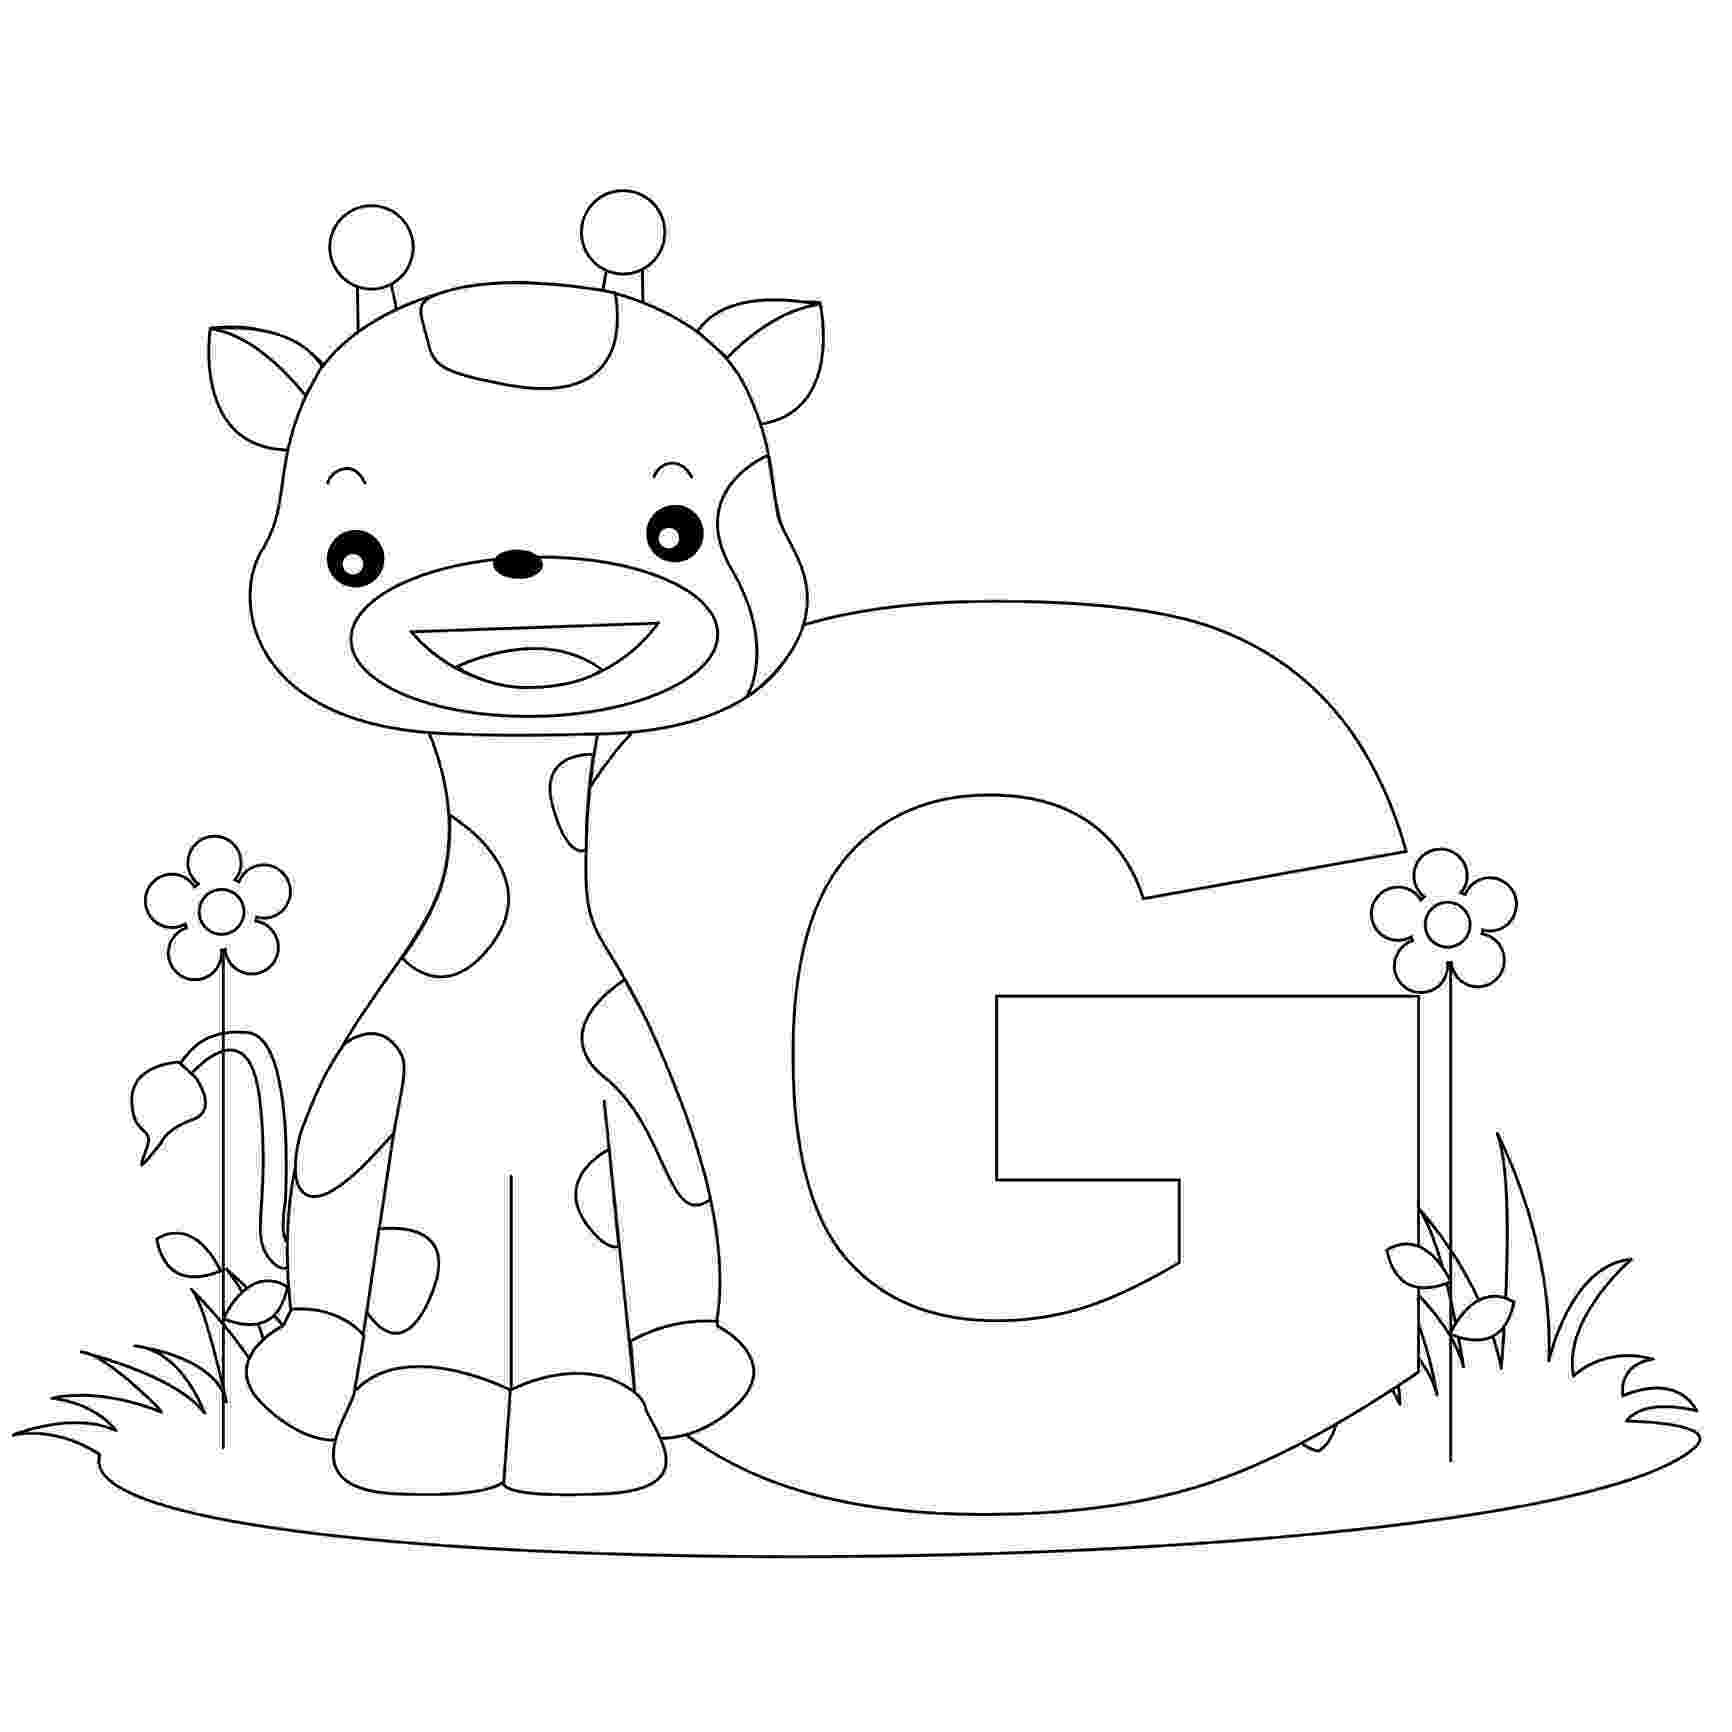 alphabet coloring worksheets free printable alphabet coloring pages for kids best worksheets alphabet coloring 1 2